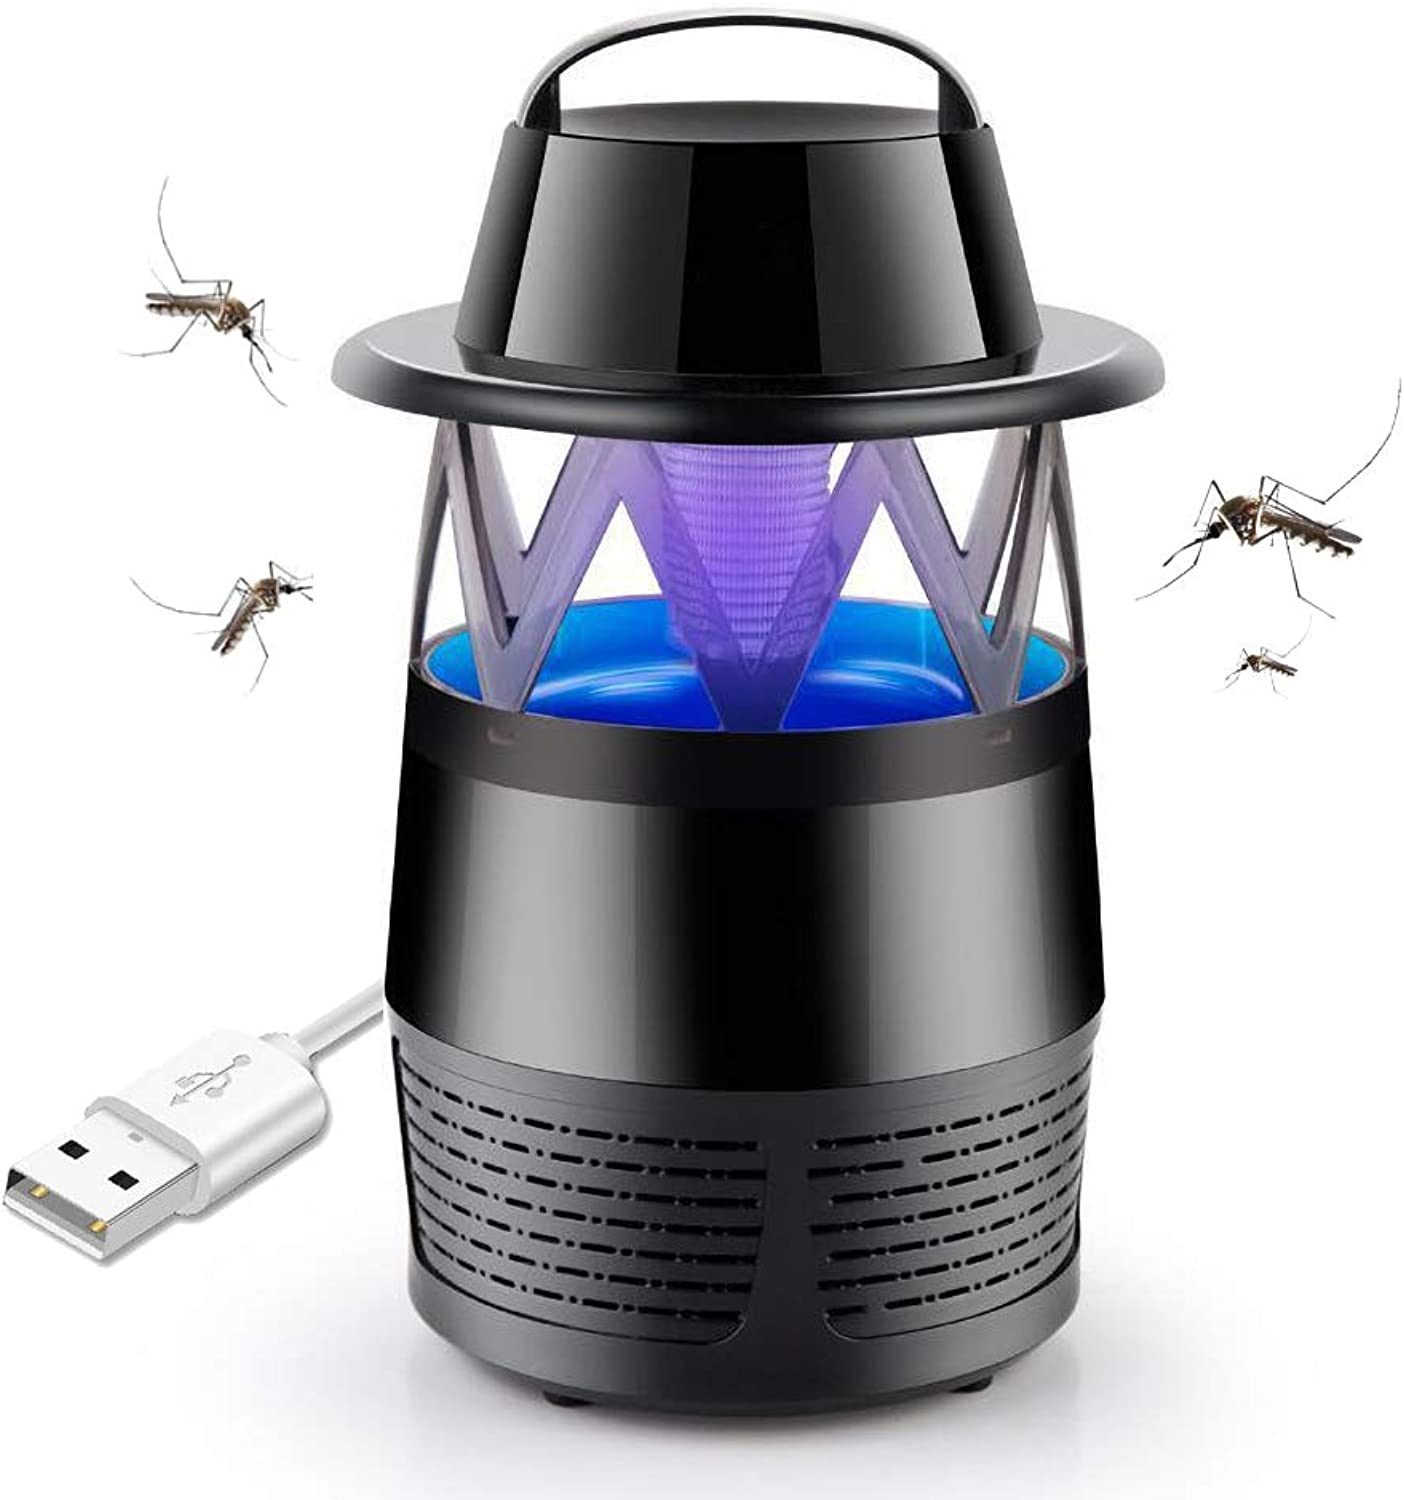 Large LED Mosquito Killer Lamp,USB Portable Electronic Insect Killer,Fly Pest Trap Catcher for Home Kitchen Garden Patio Yard,Black